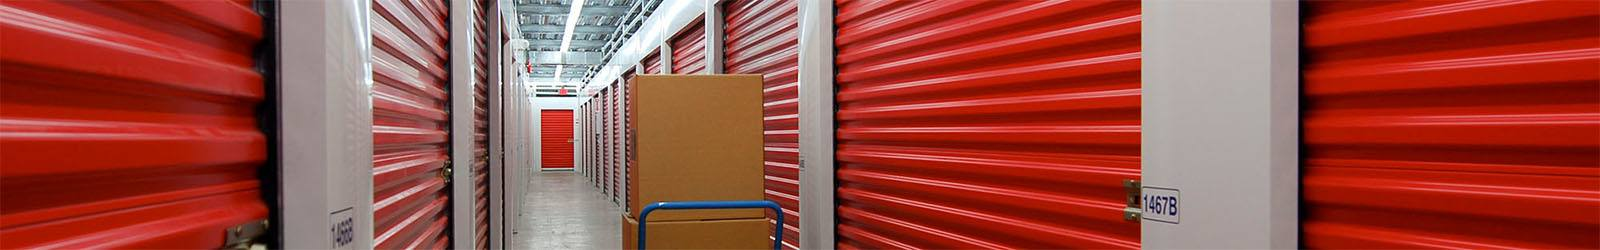 Storage units in Burnaby, BC